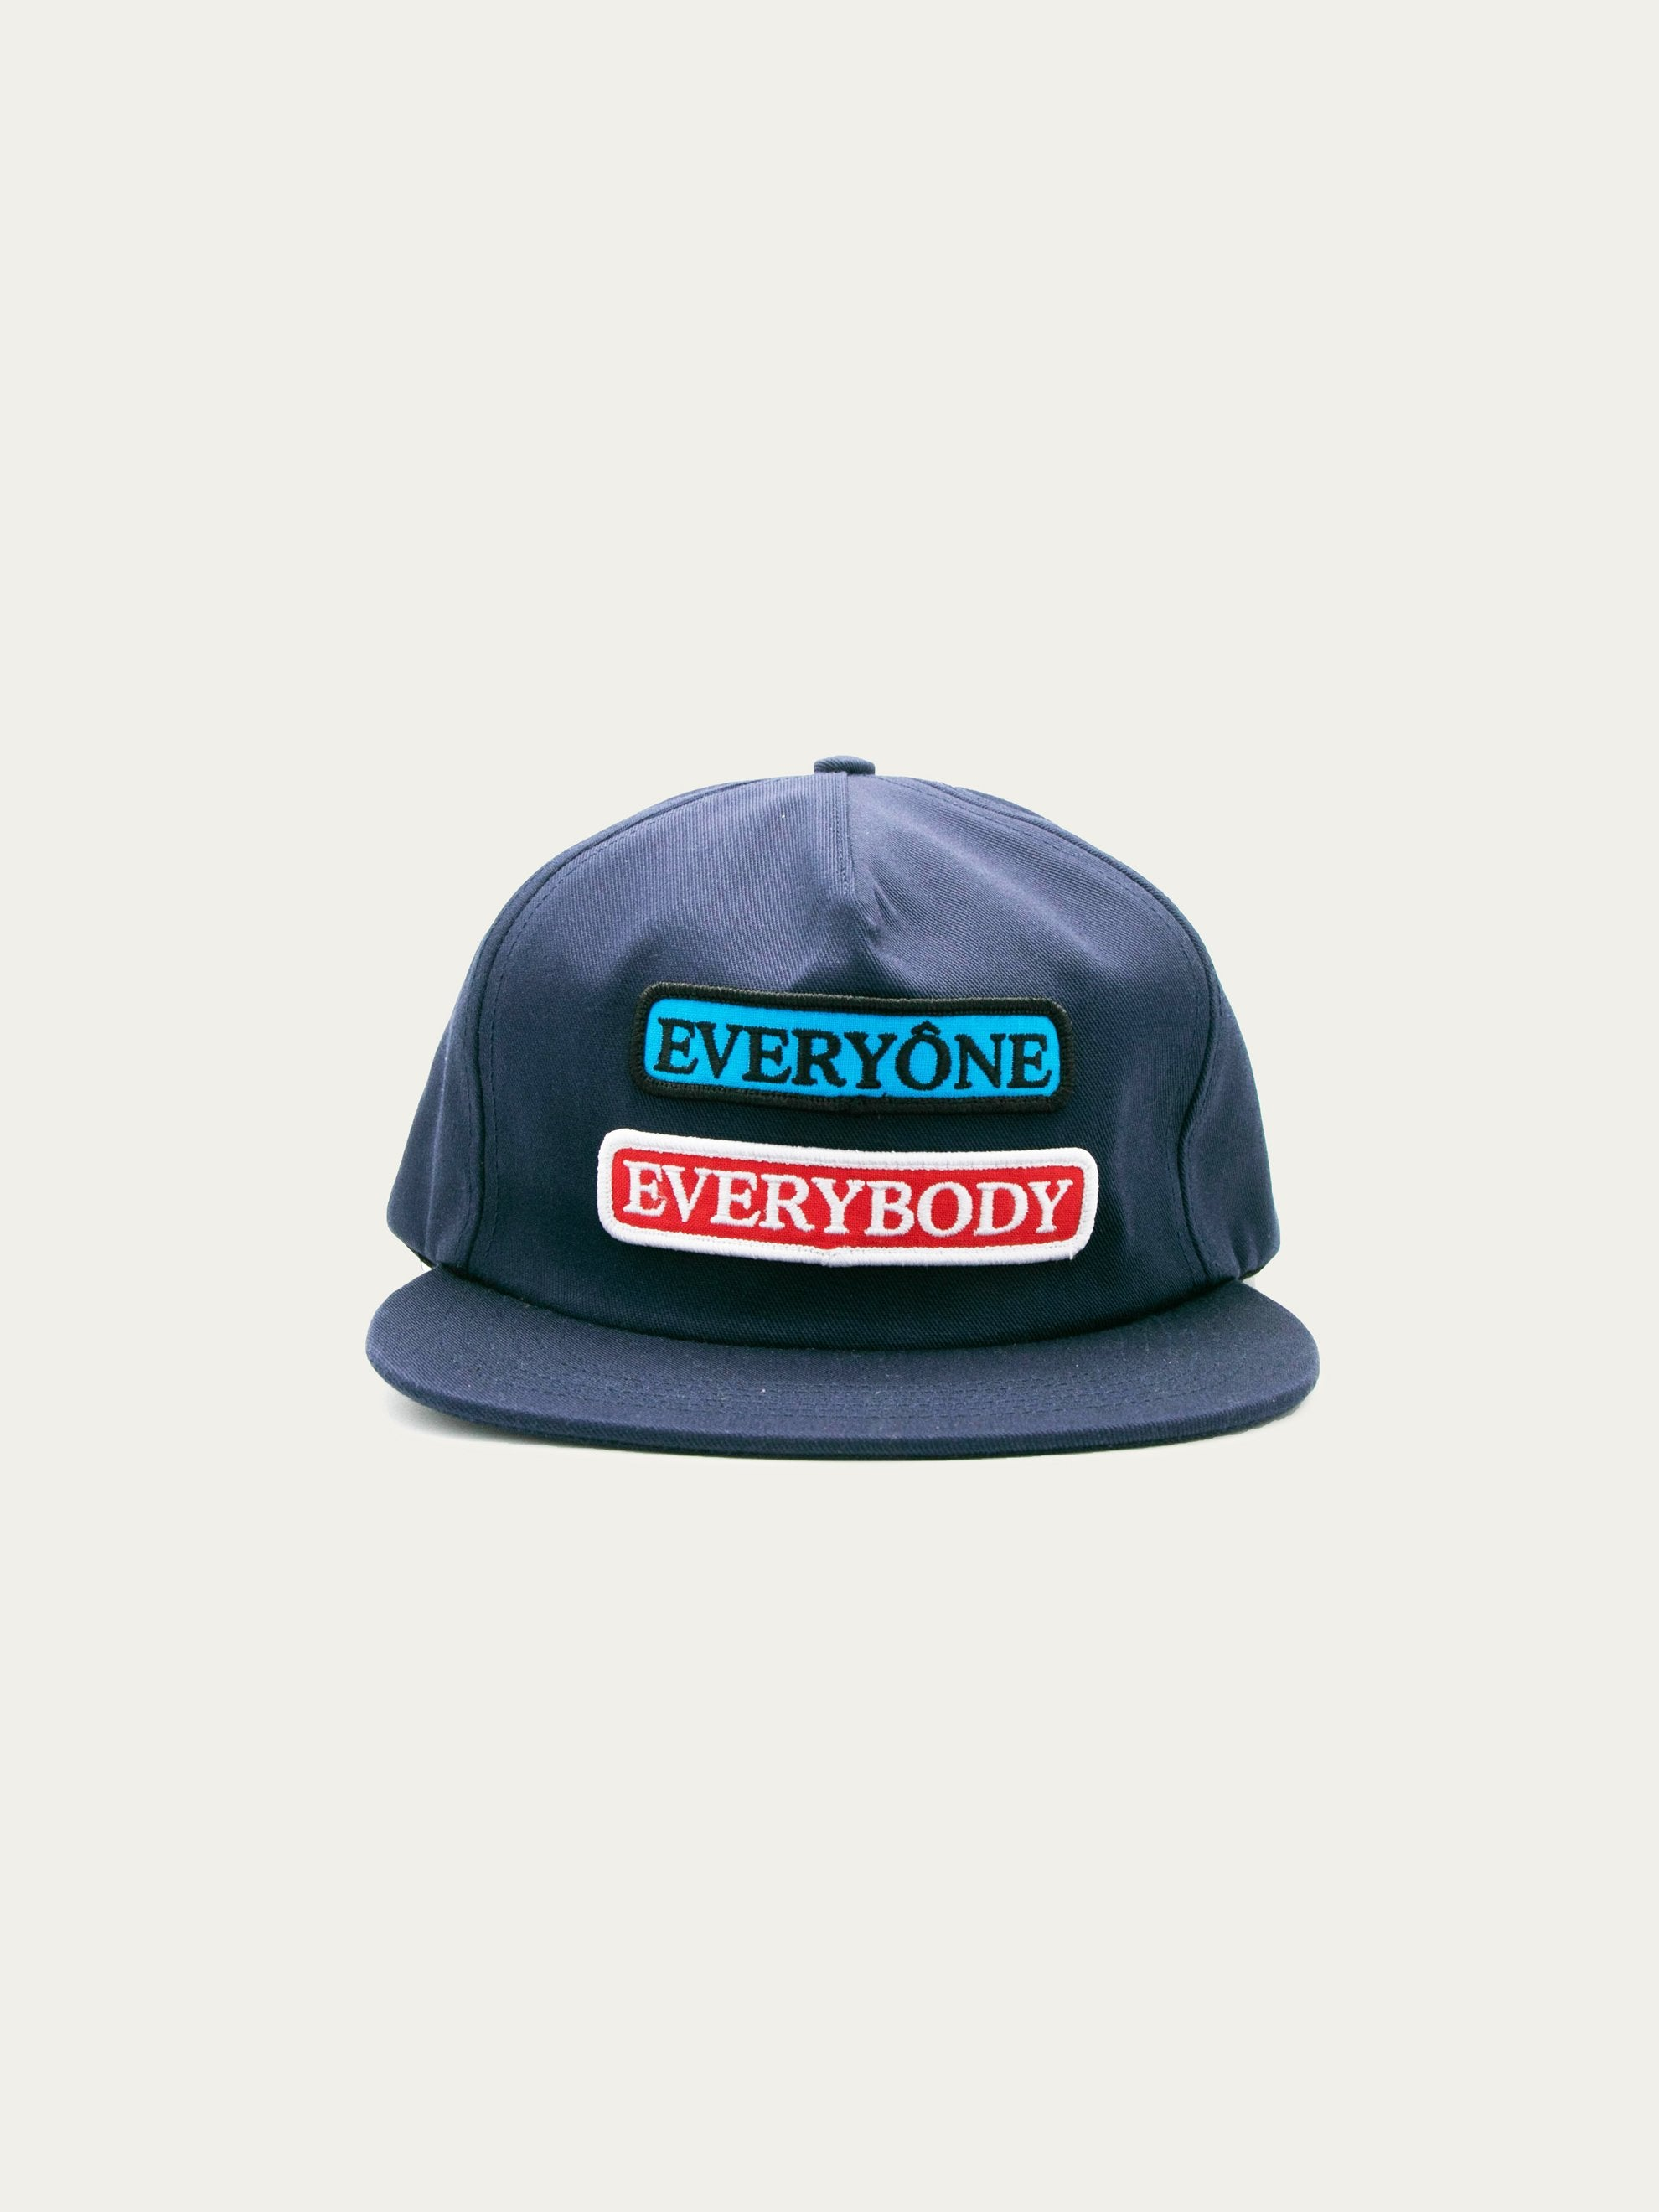 Everyone Everybody Hat